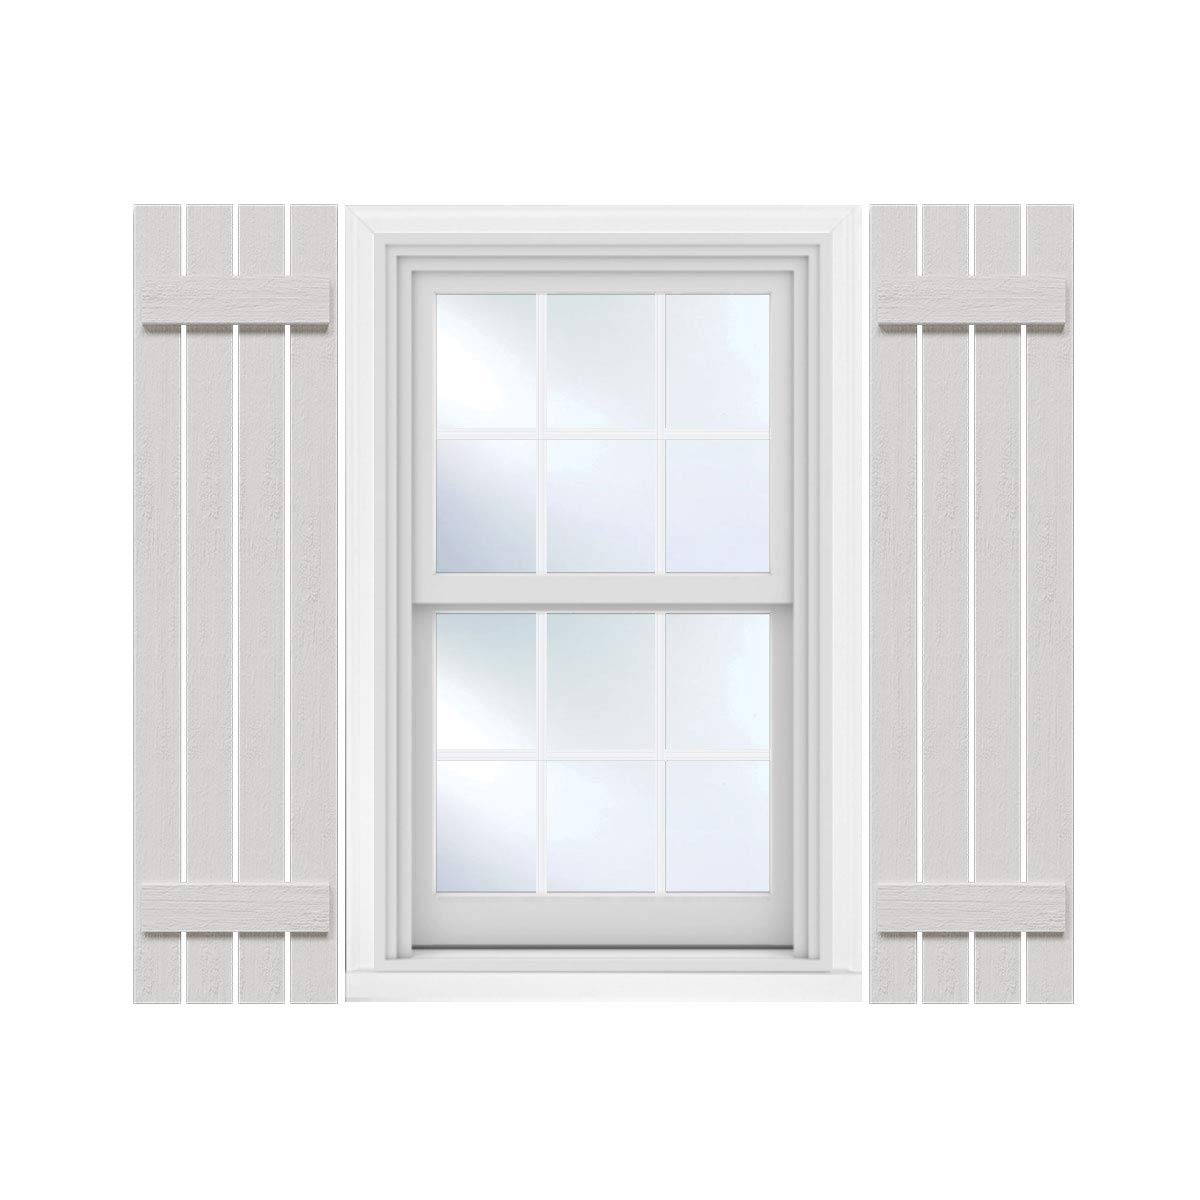 Ekena Millwork FBS06S24X072RUF Rustic Four Spaced Board-n-Batten Faux Wood Shutters, 24''W x 72''H, Primed by Ekena Millwork